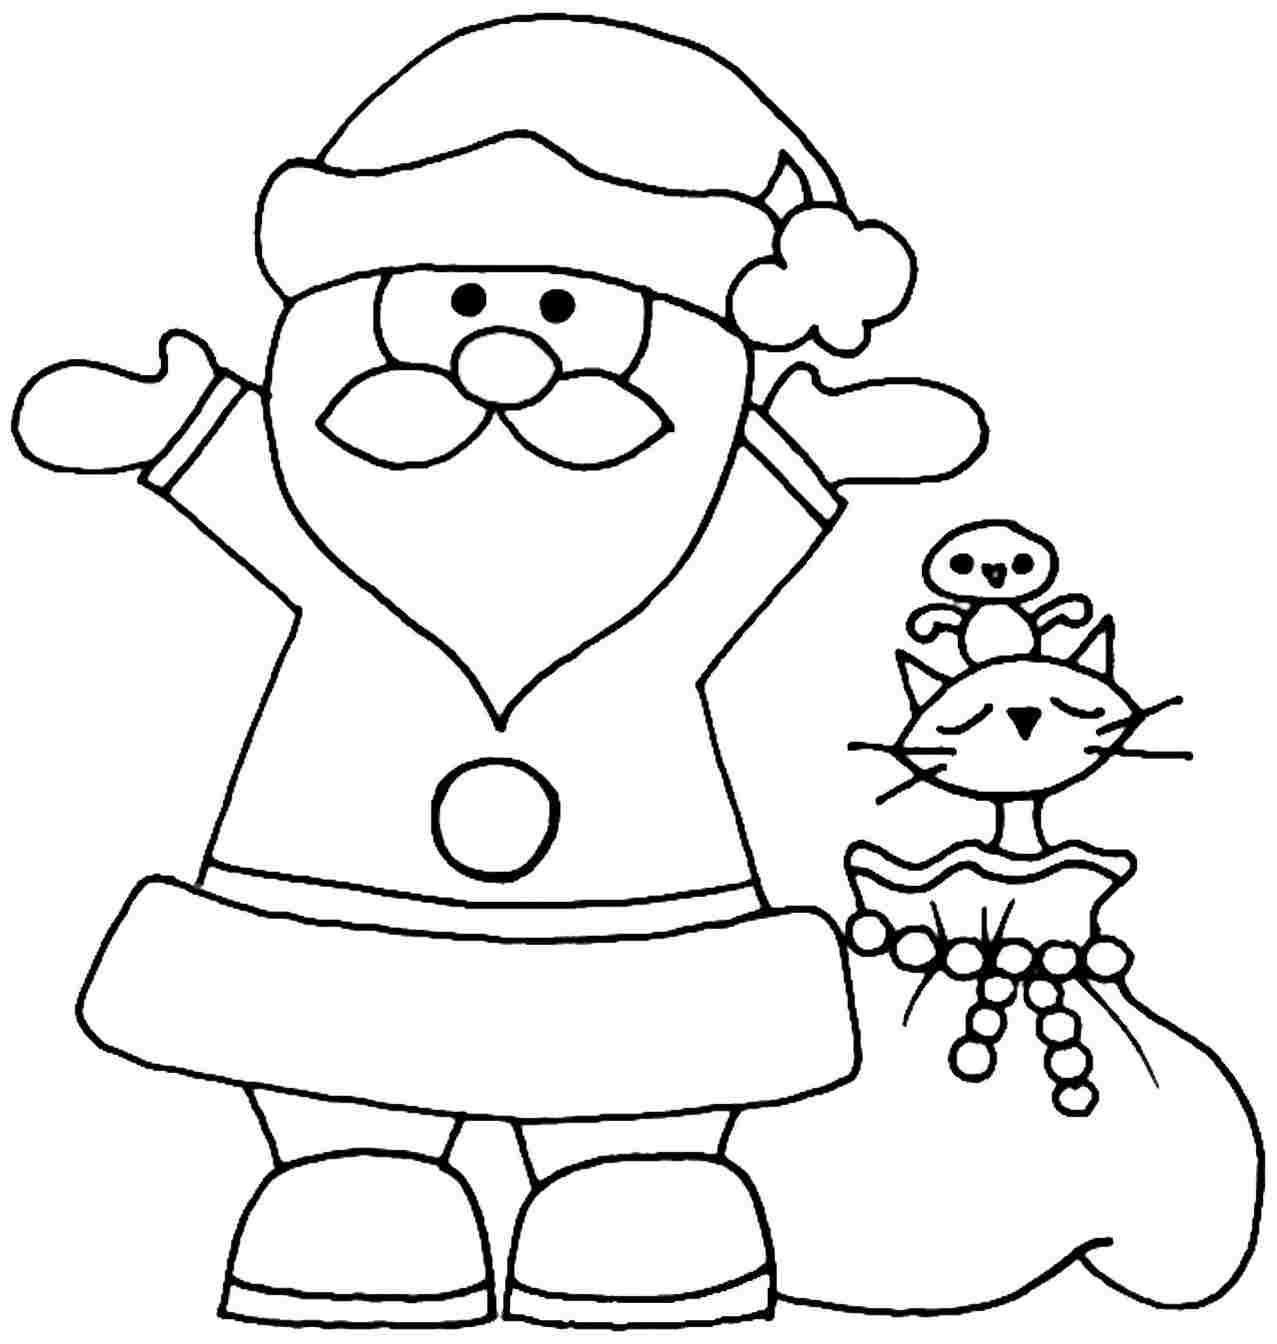 Pin By Shreya Thakur On Free Coloring Pages